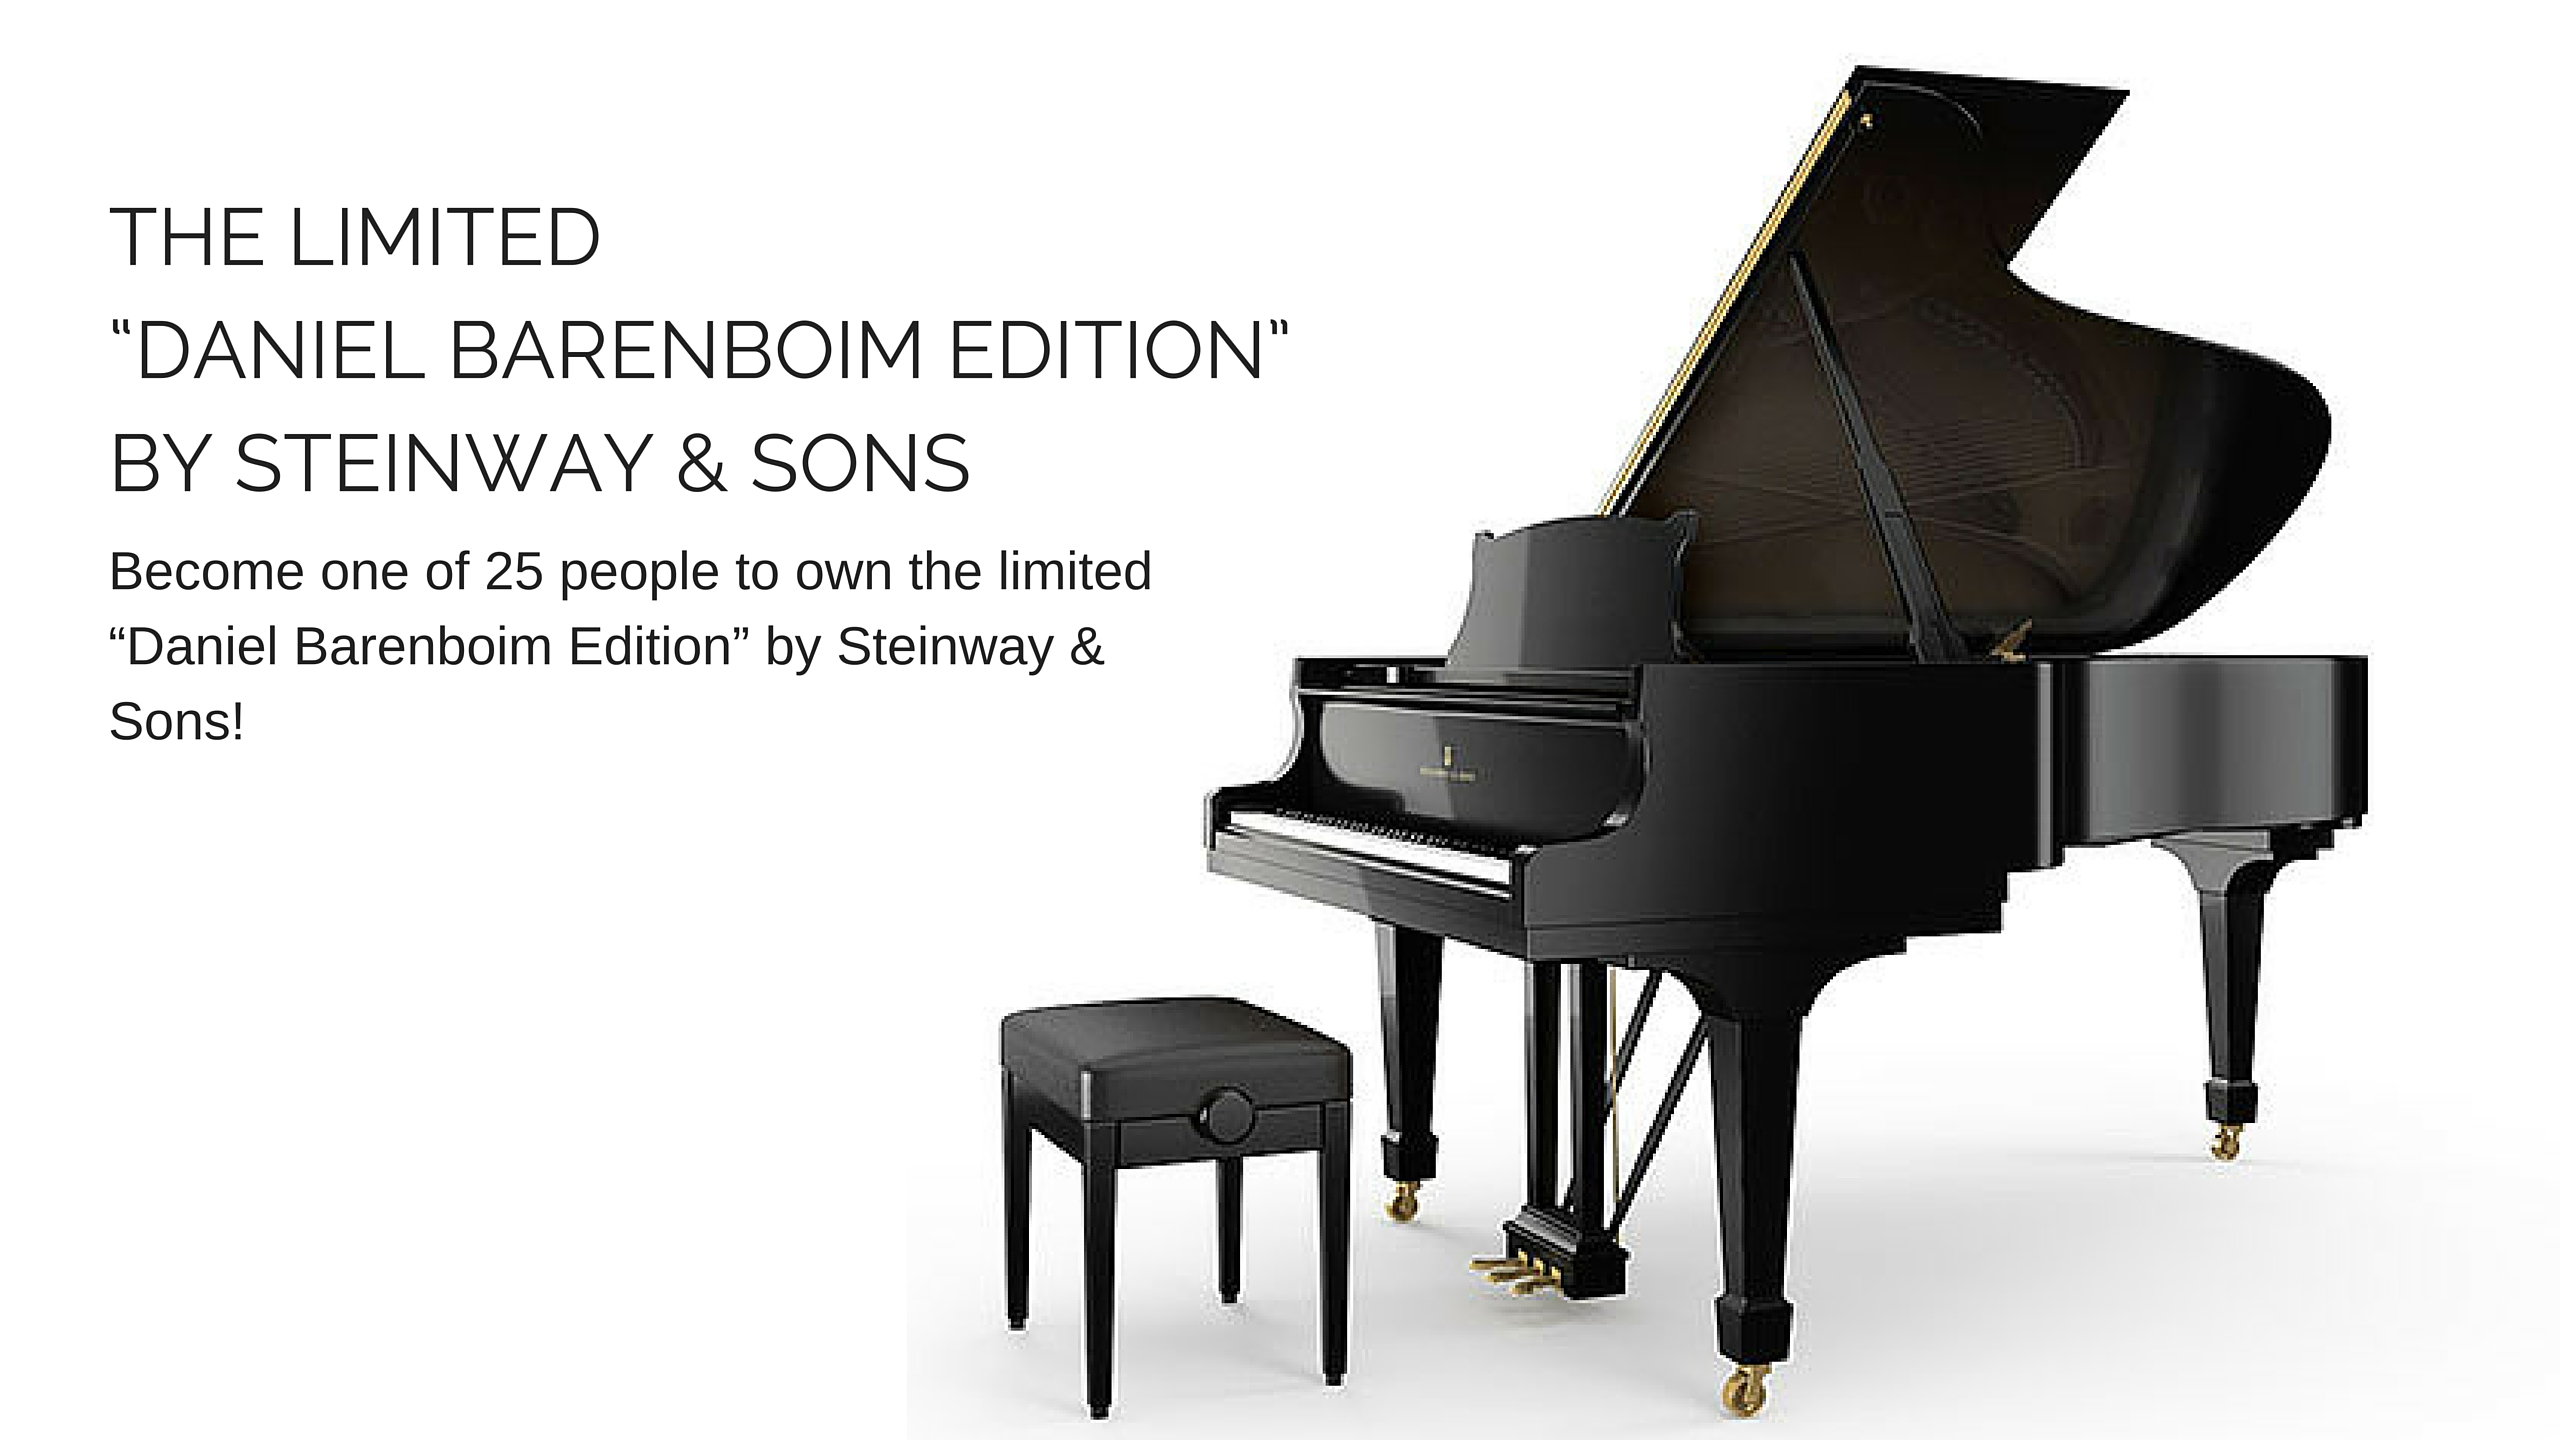 "THE LIMITED ""DANIEL BARENBOIM EDITION"" BY STEINWAY & SONS"